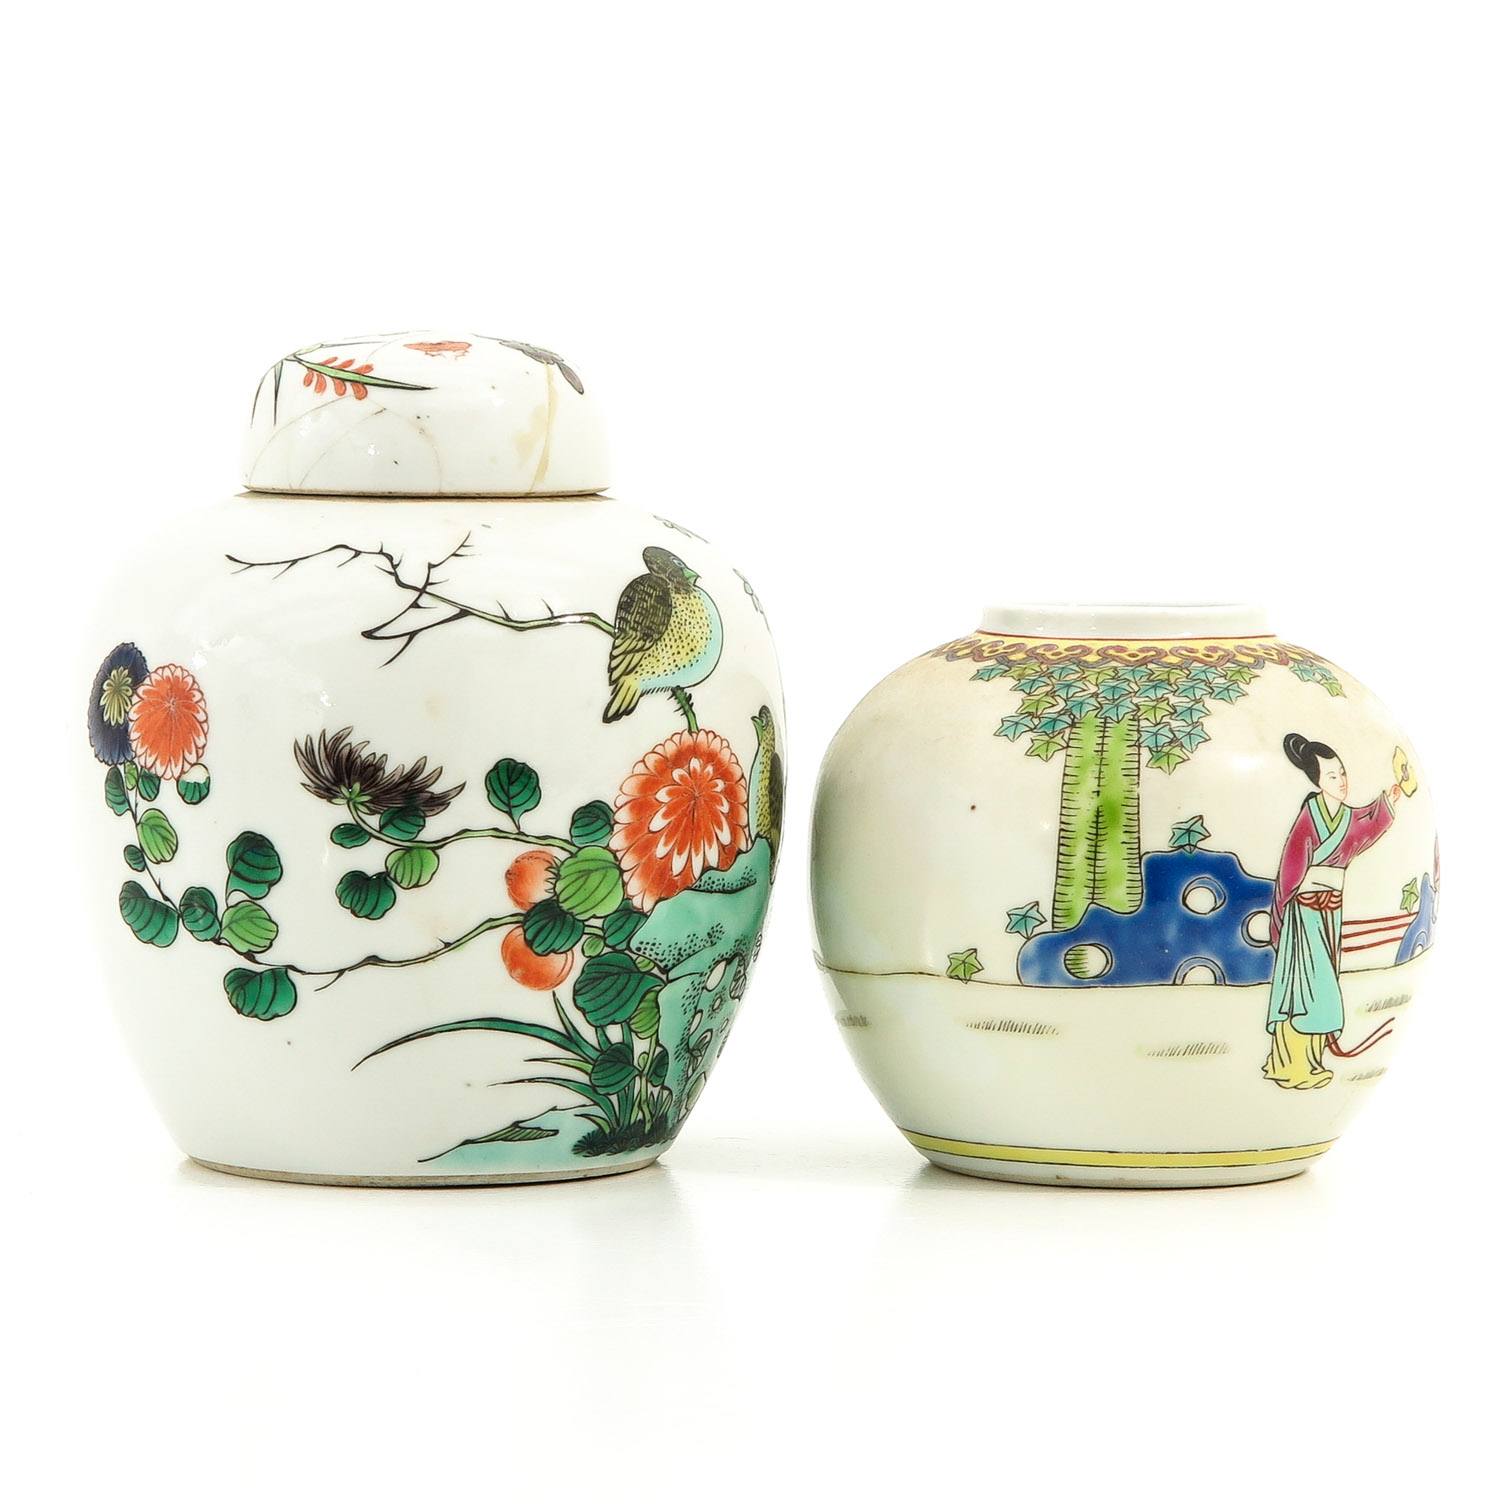 A Lot of 2 Ginger Jars - Image 4 of 9